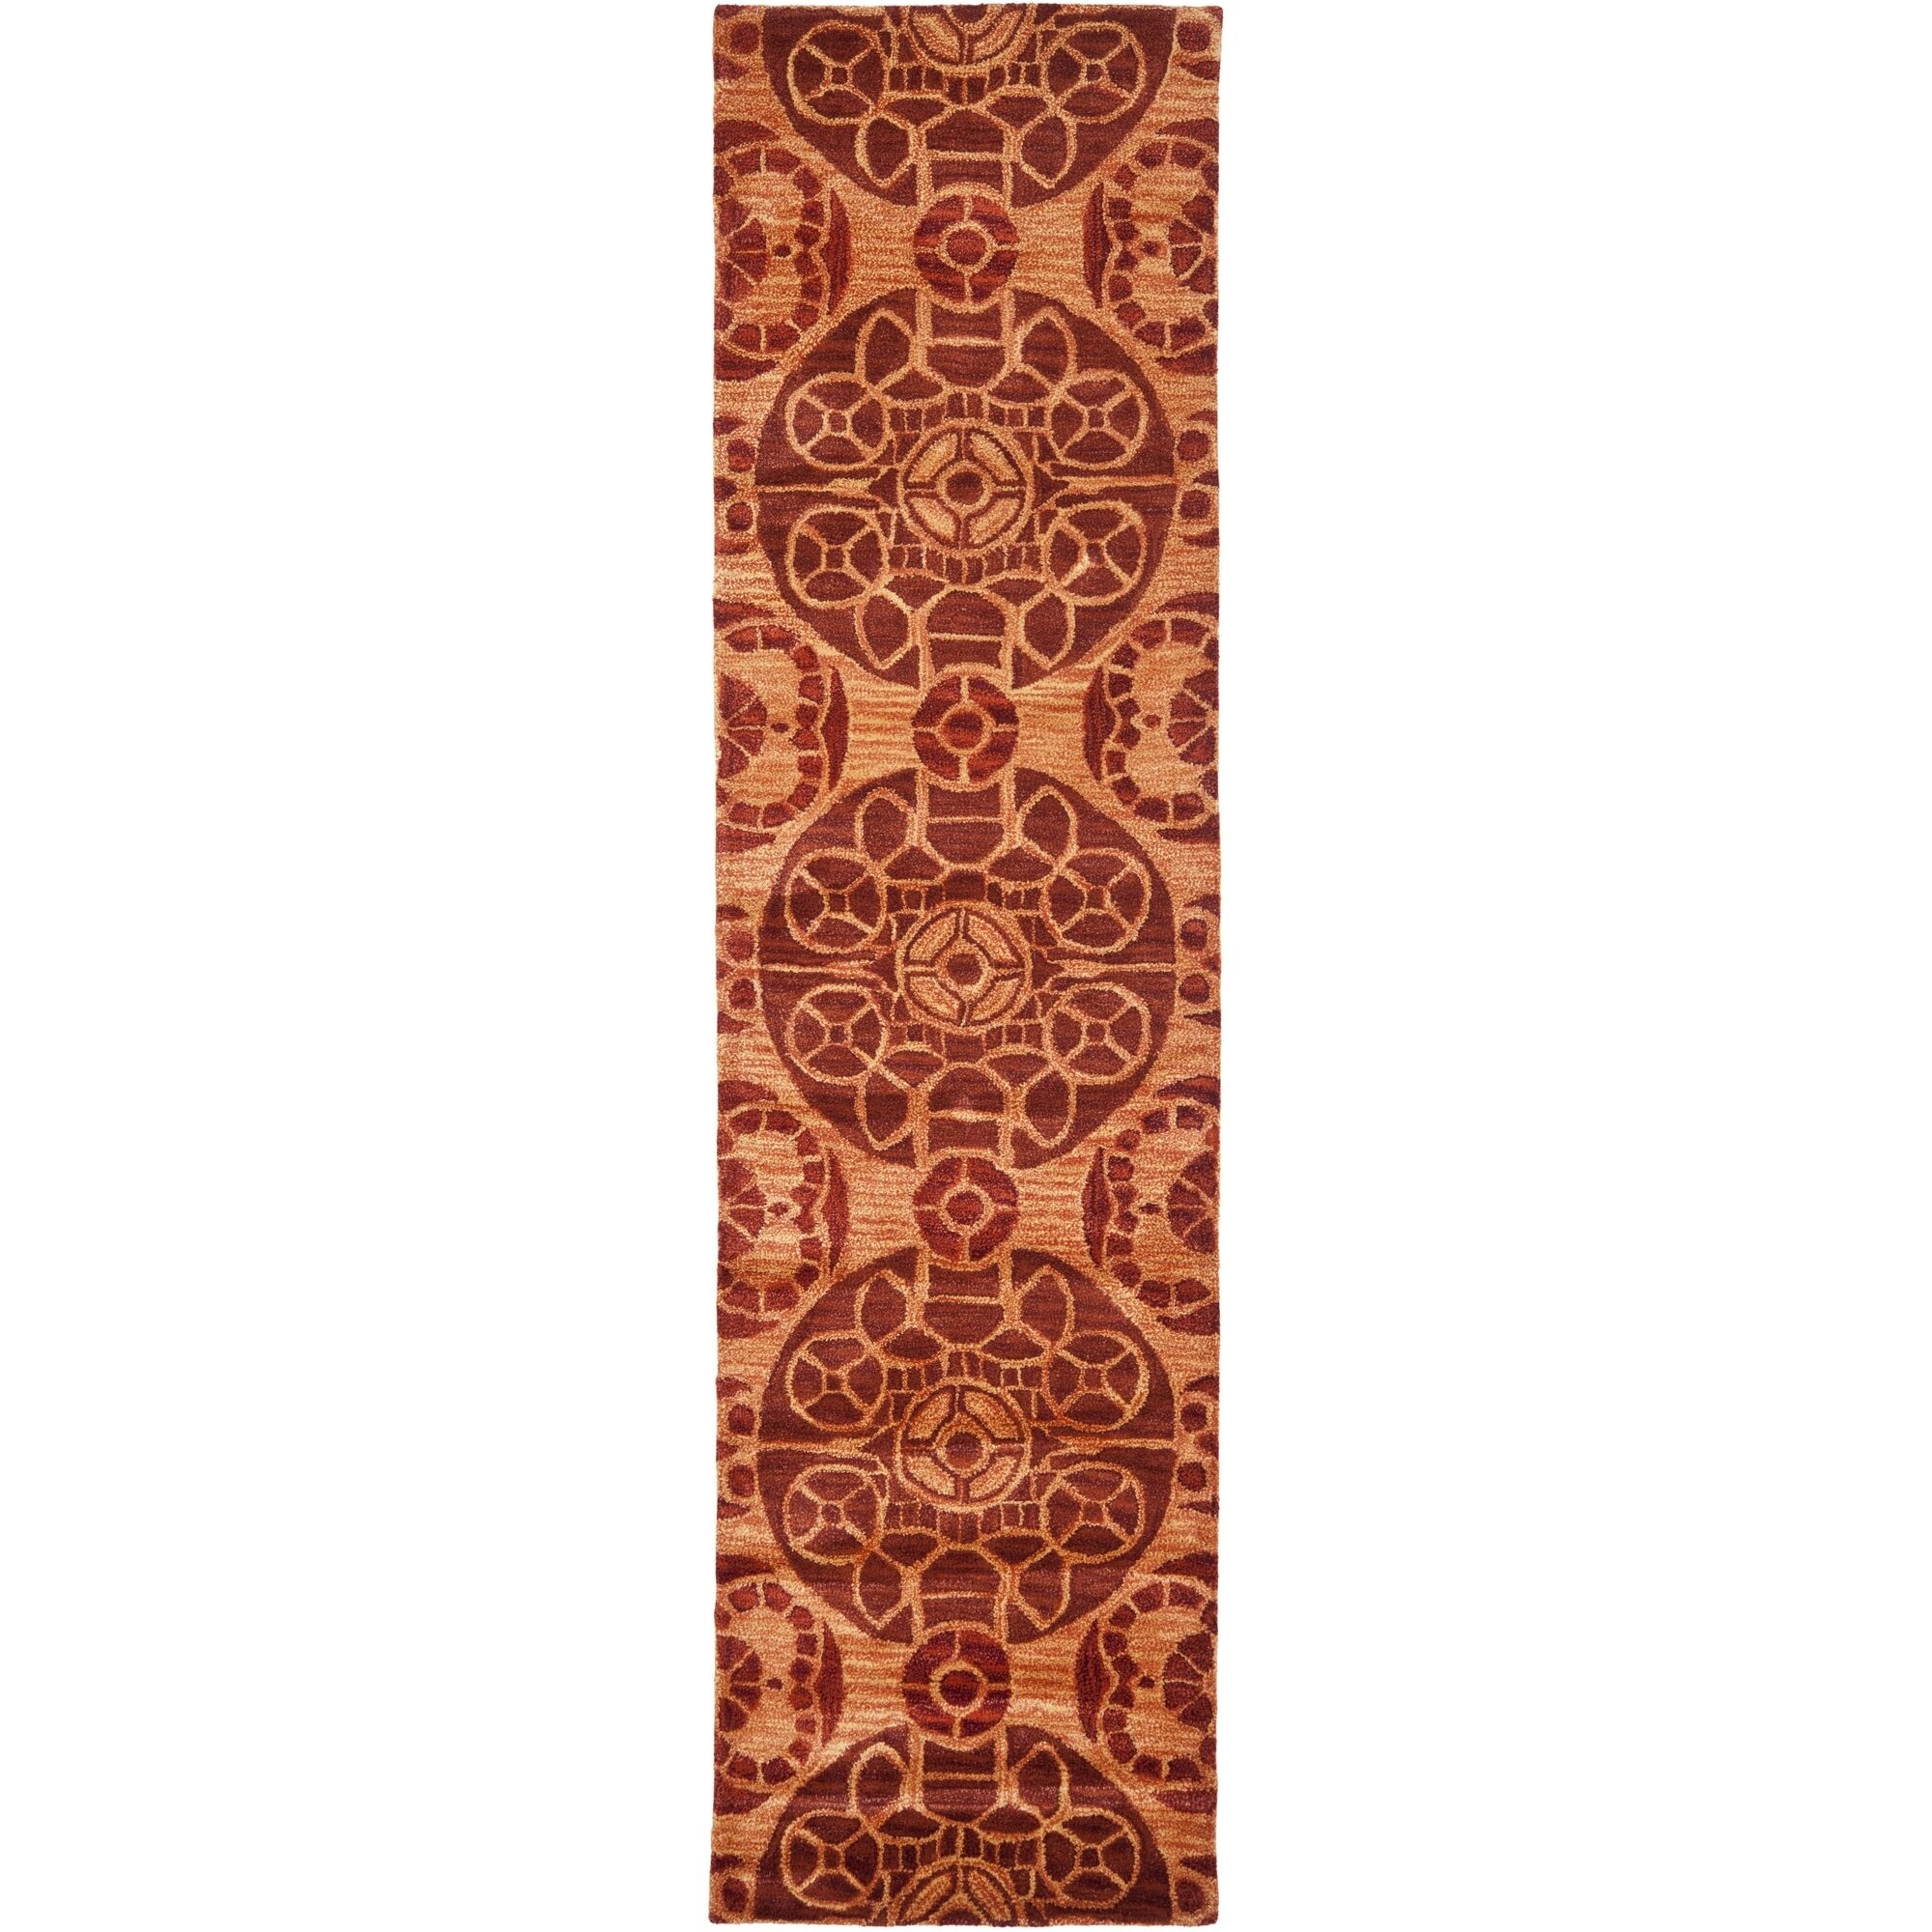 Kouerga Hand-Tufted/Hand-Hooked Rust/Orange Area Rug Rug Size: Runner 2'3